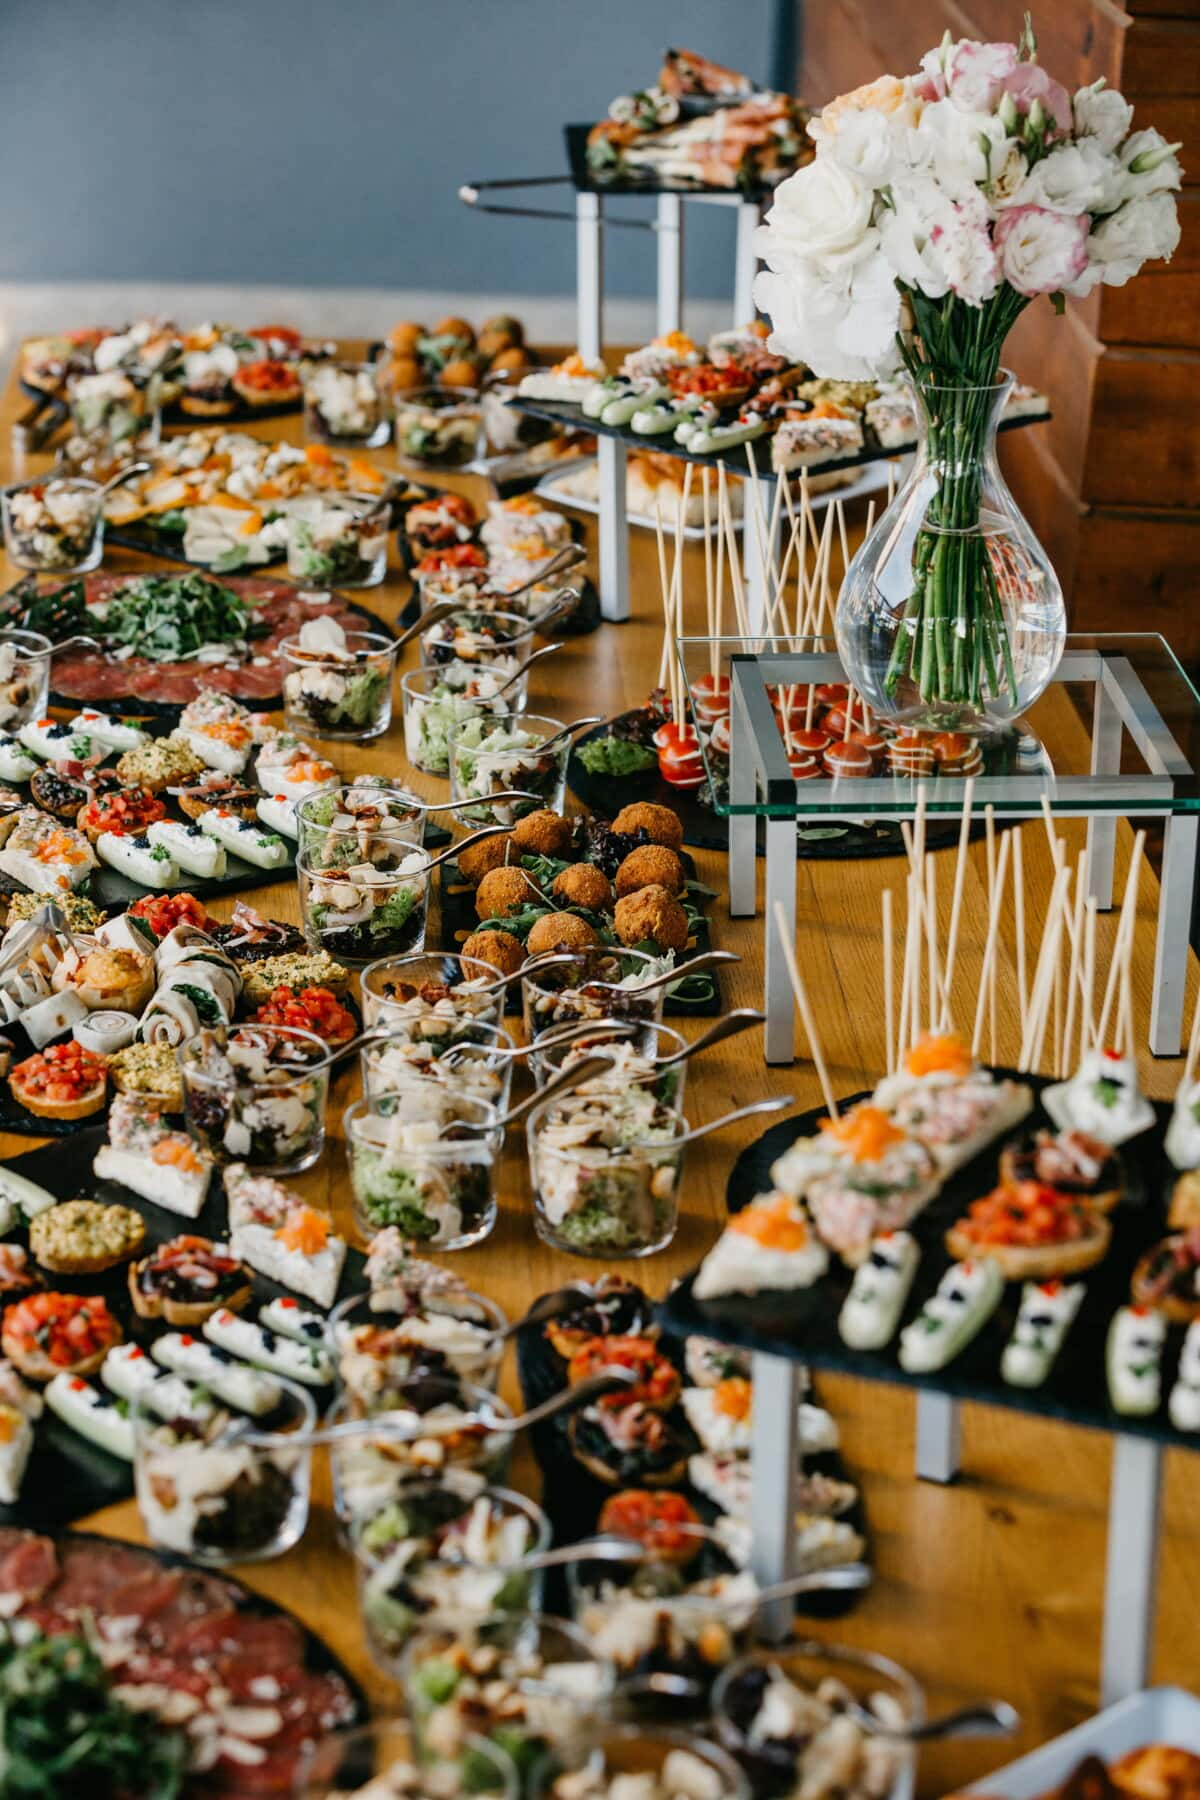 buffet, snack, table, banquet, food, outdoors, seafood, interior design, merchandise, meal